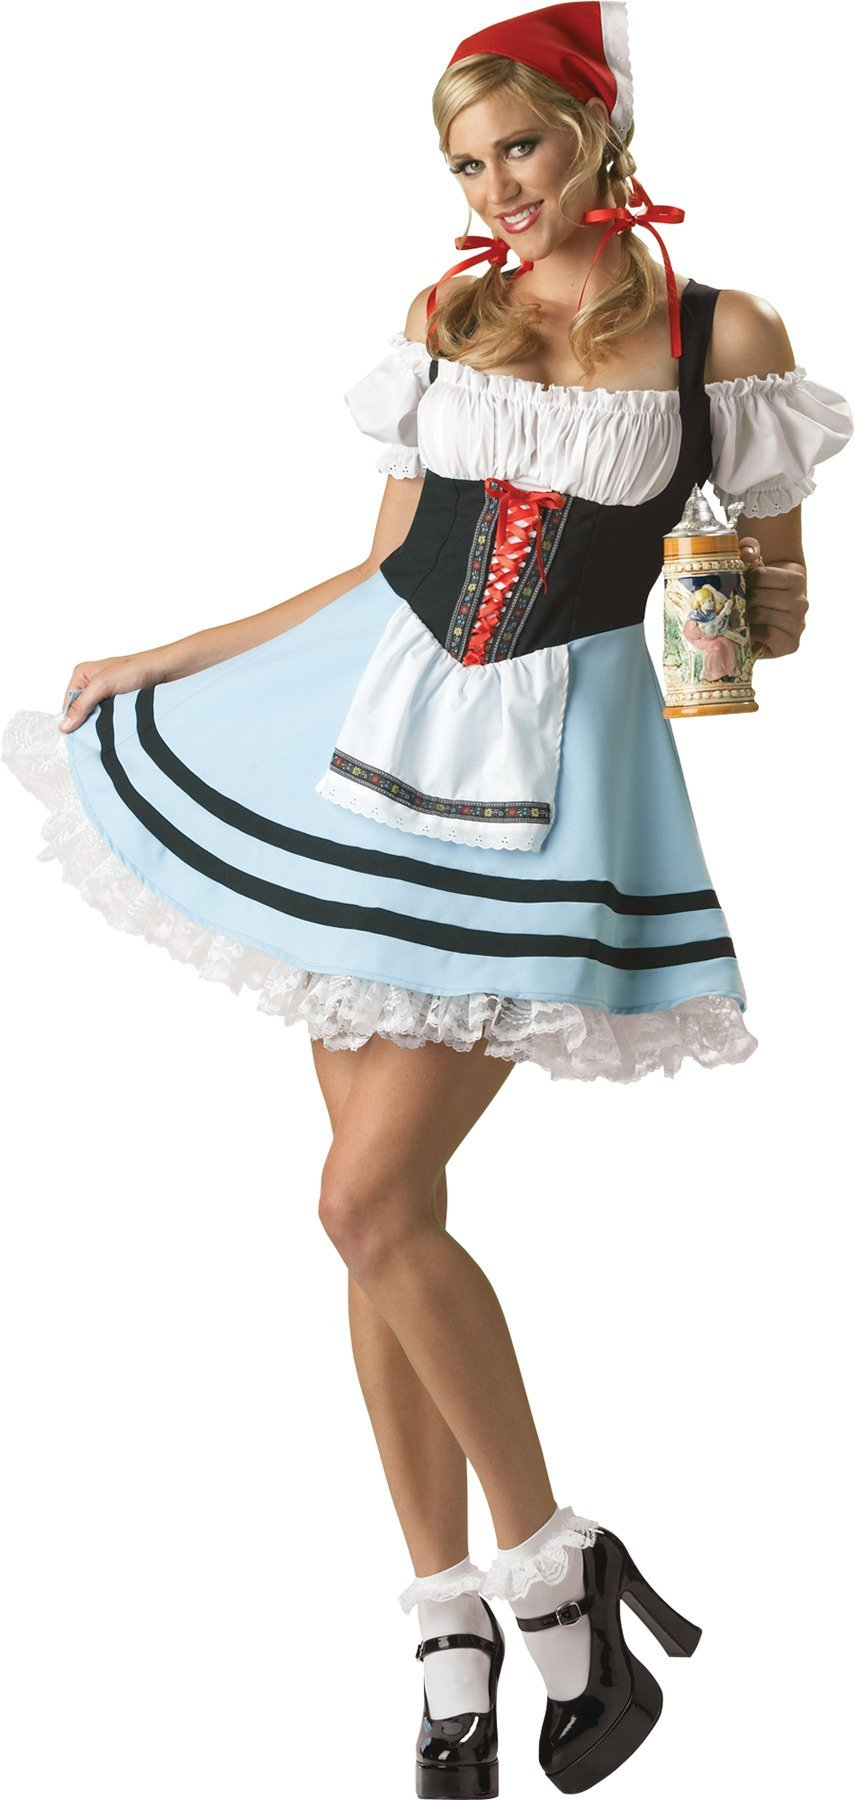 Dirndl German Girl Costume - Hire - The Costume Company | Fancy Dress Costumes Hire and Purchase Brisbane and Australia